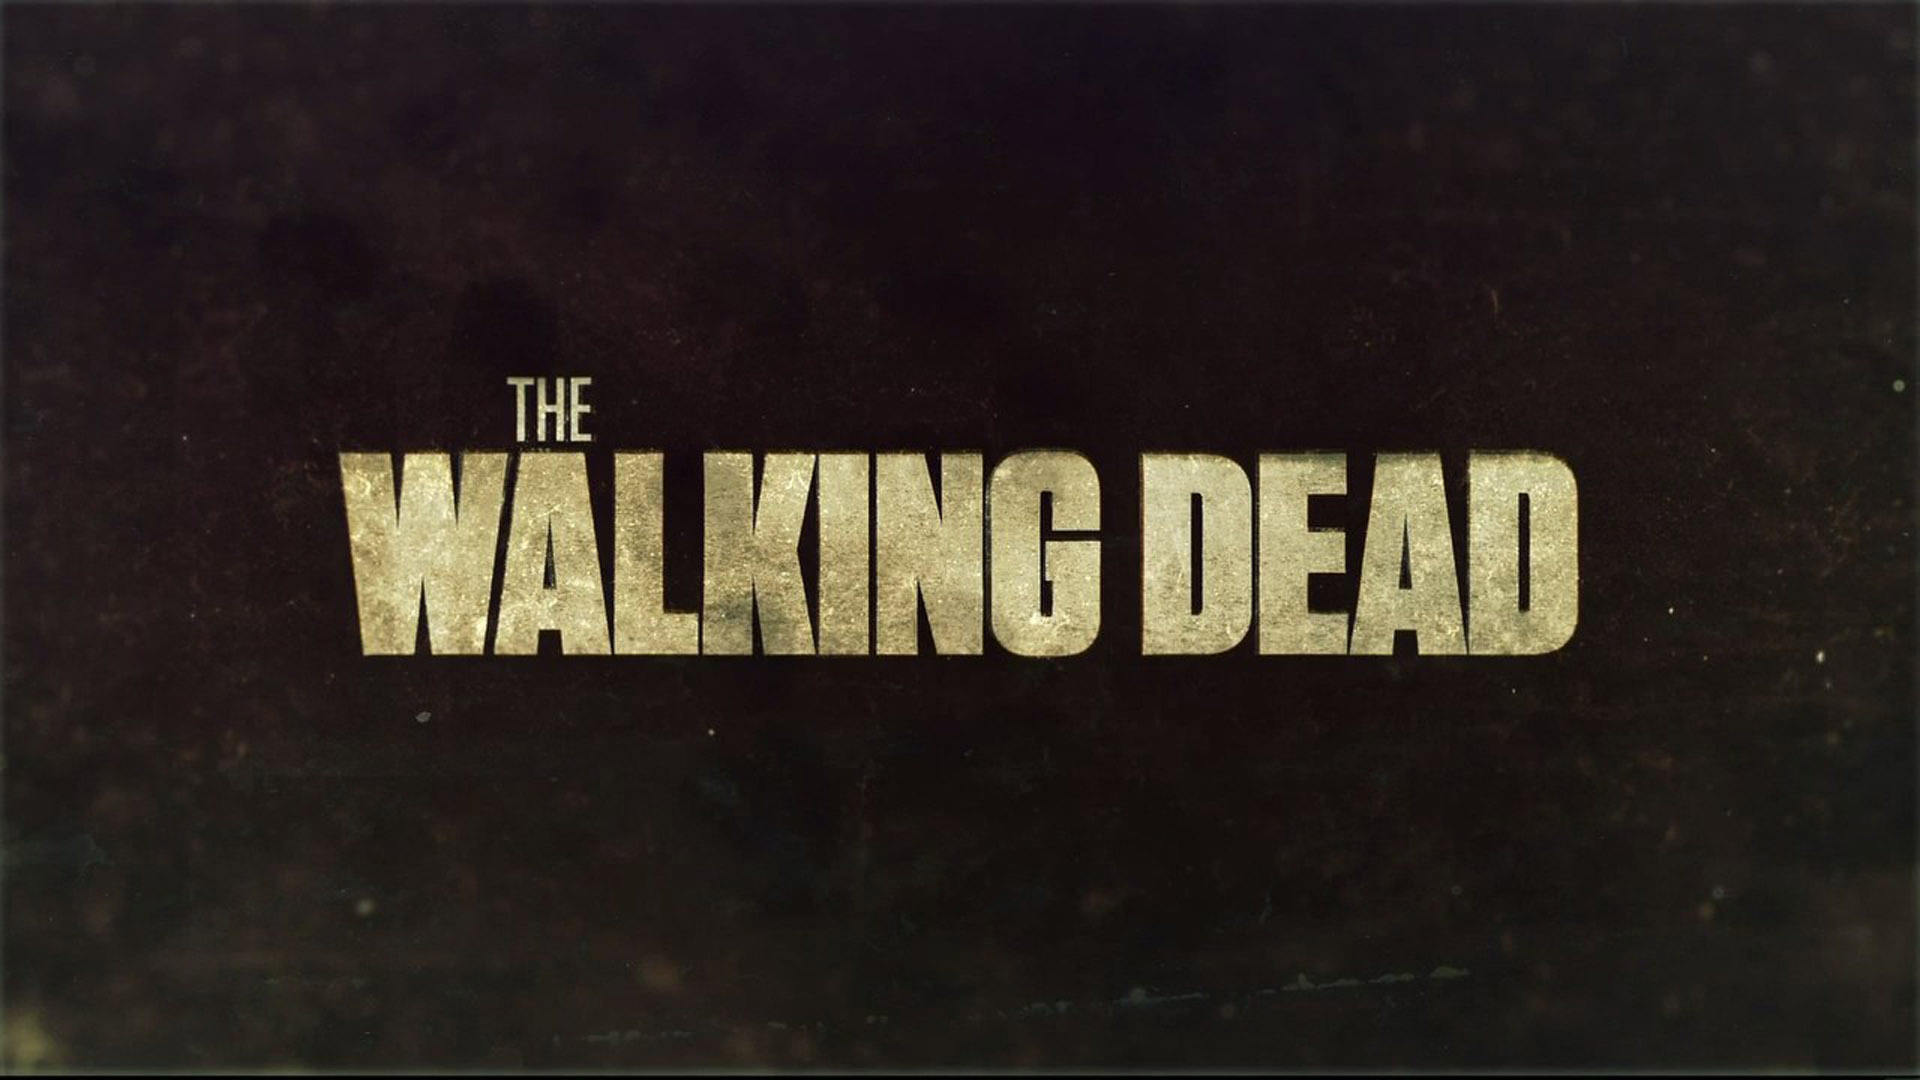 the walking dead backgrounds, pictures, images